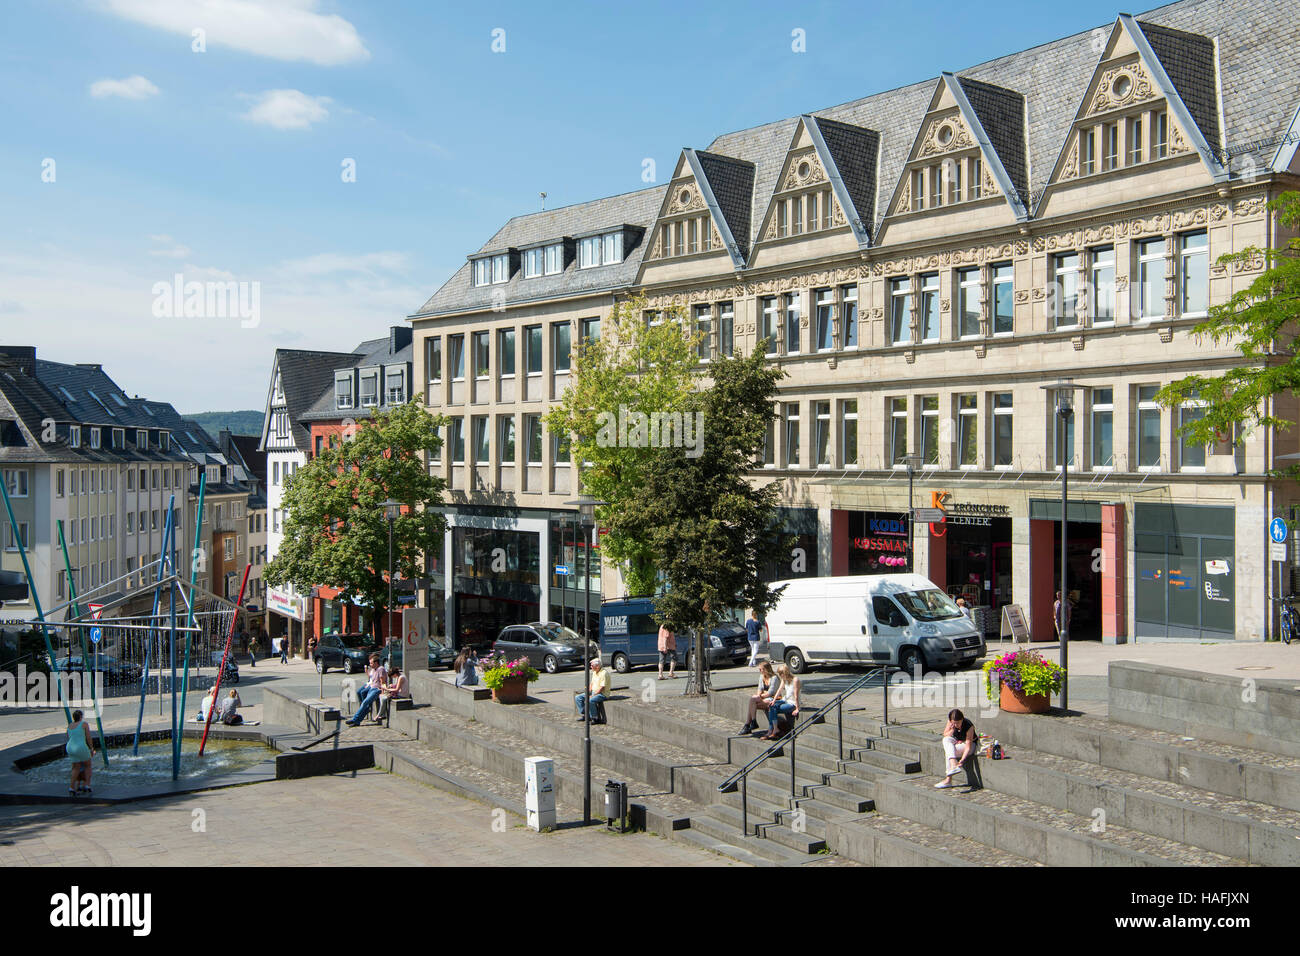 deutschland nrw siegen markt in der altstadt stock photo 126963277 alamy. Black Bedroom Furniture Sets. Home Design Ideas